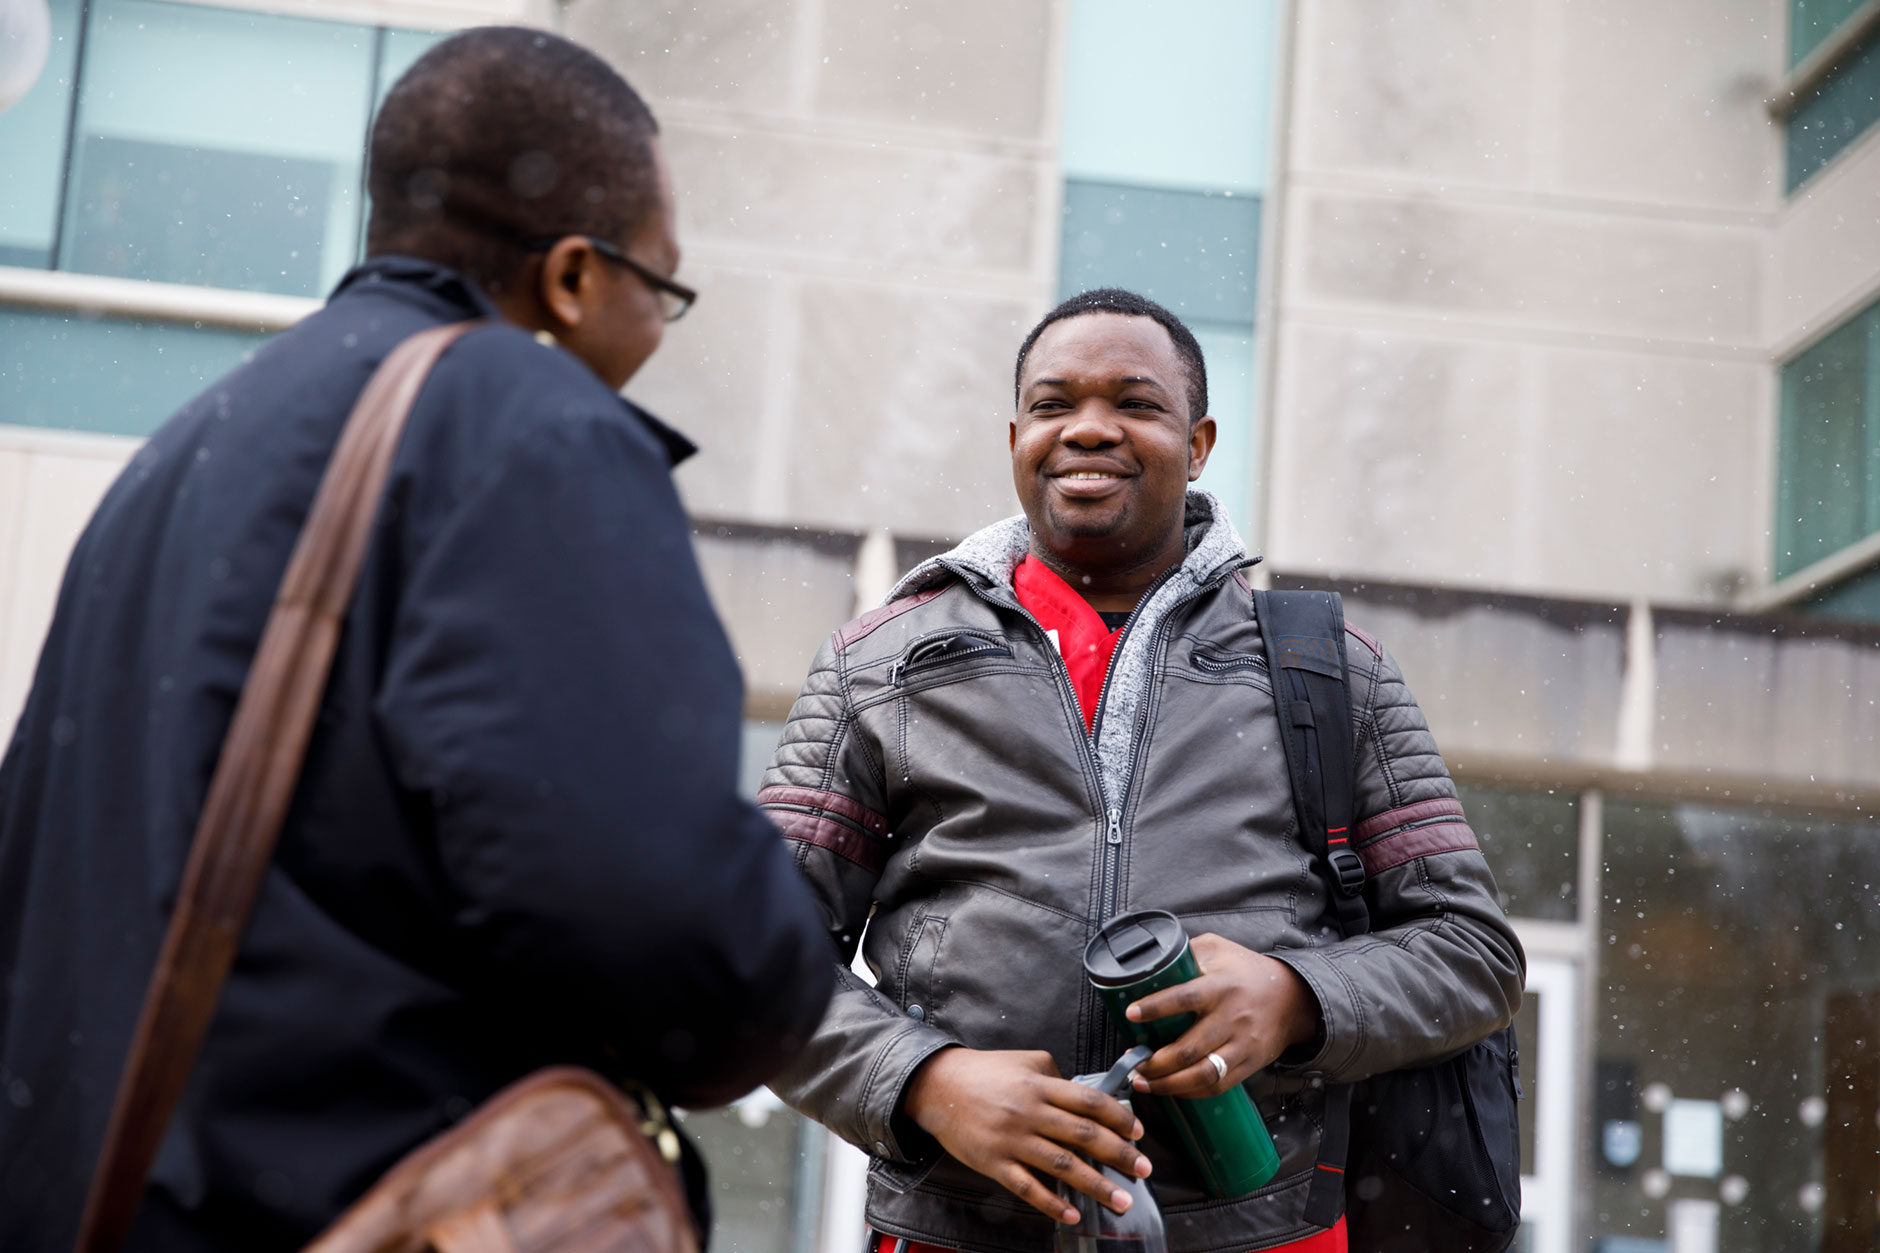 Desmond Atem, a graduating senior at IU South Bend, speaks with a colleague outside of Schurz Library on Monday, April 9, 2018. (James Brosher/IU Communications)